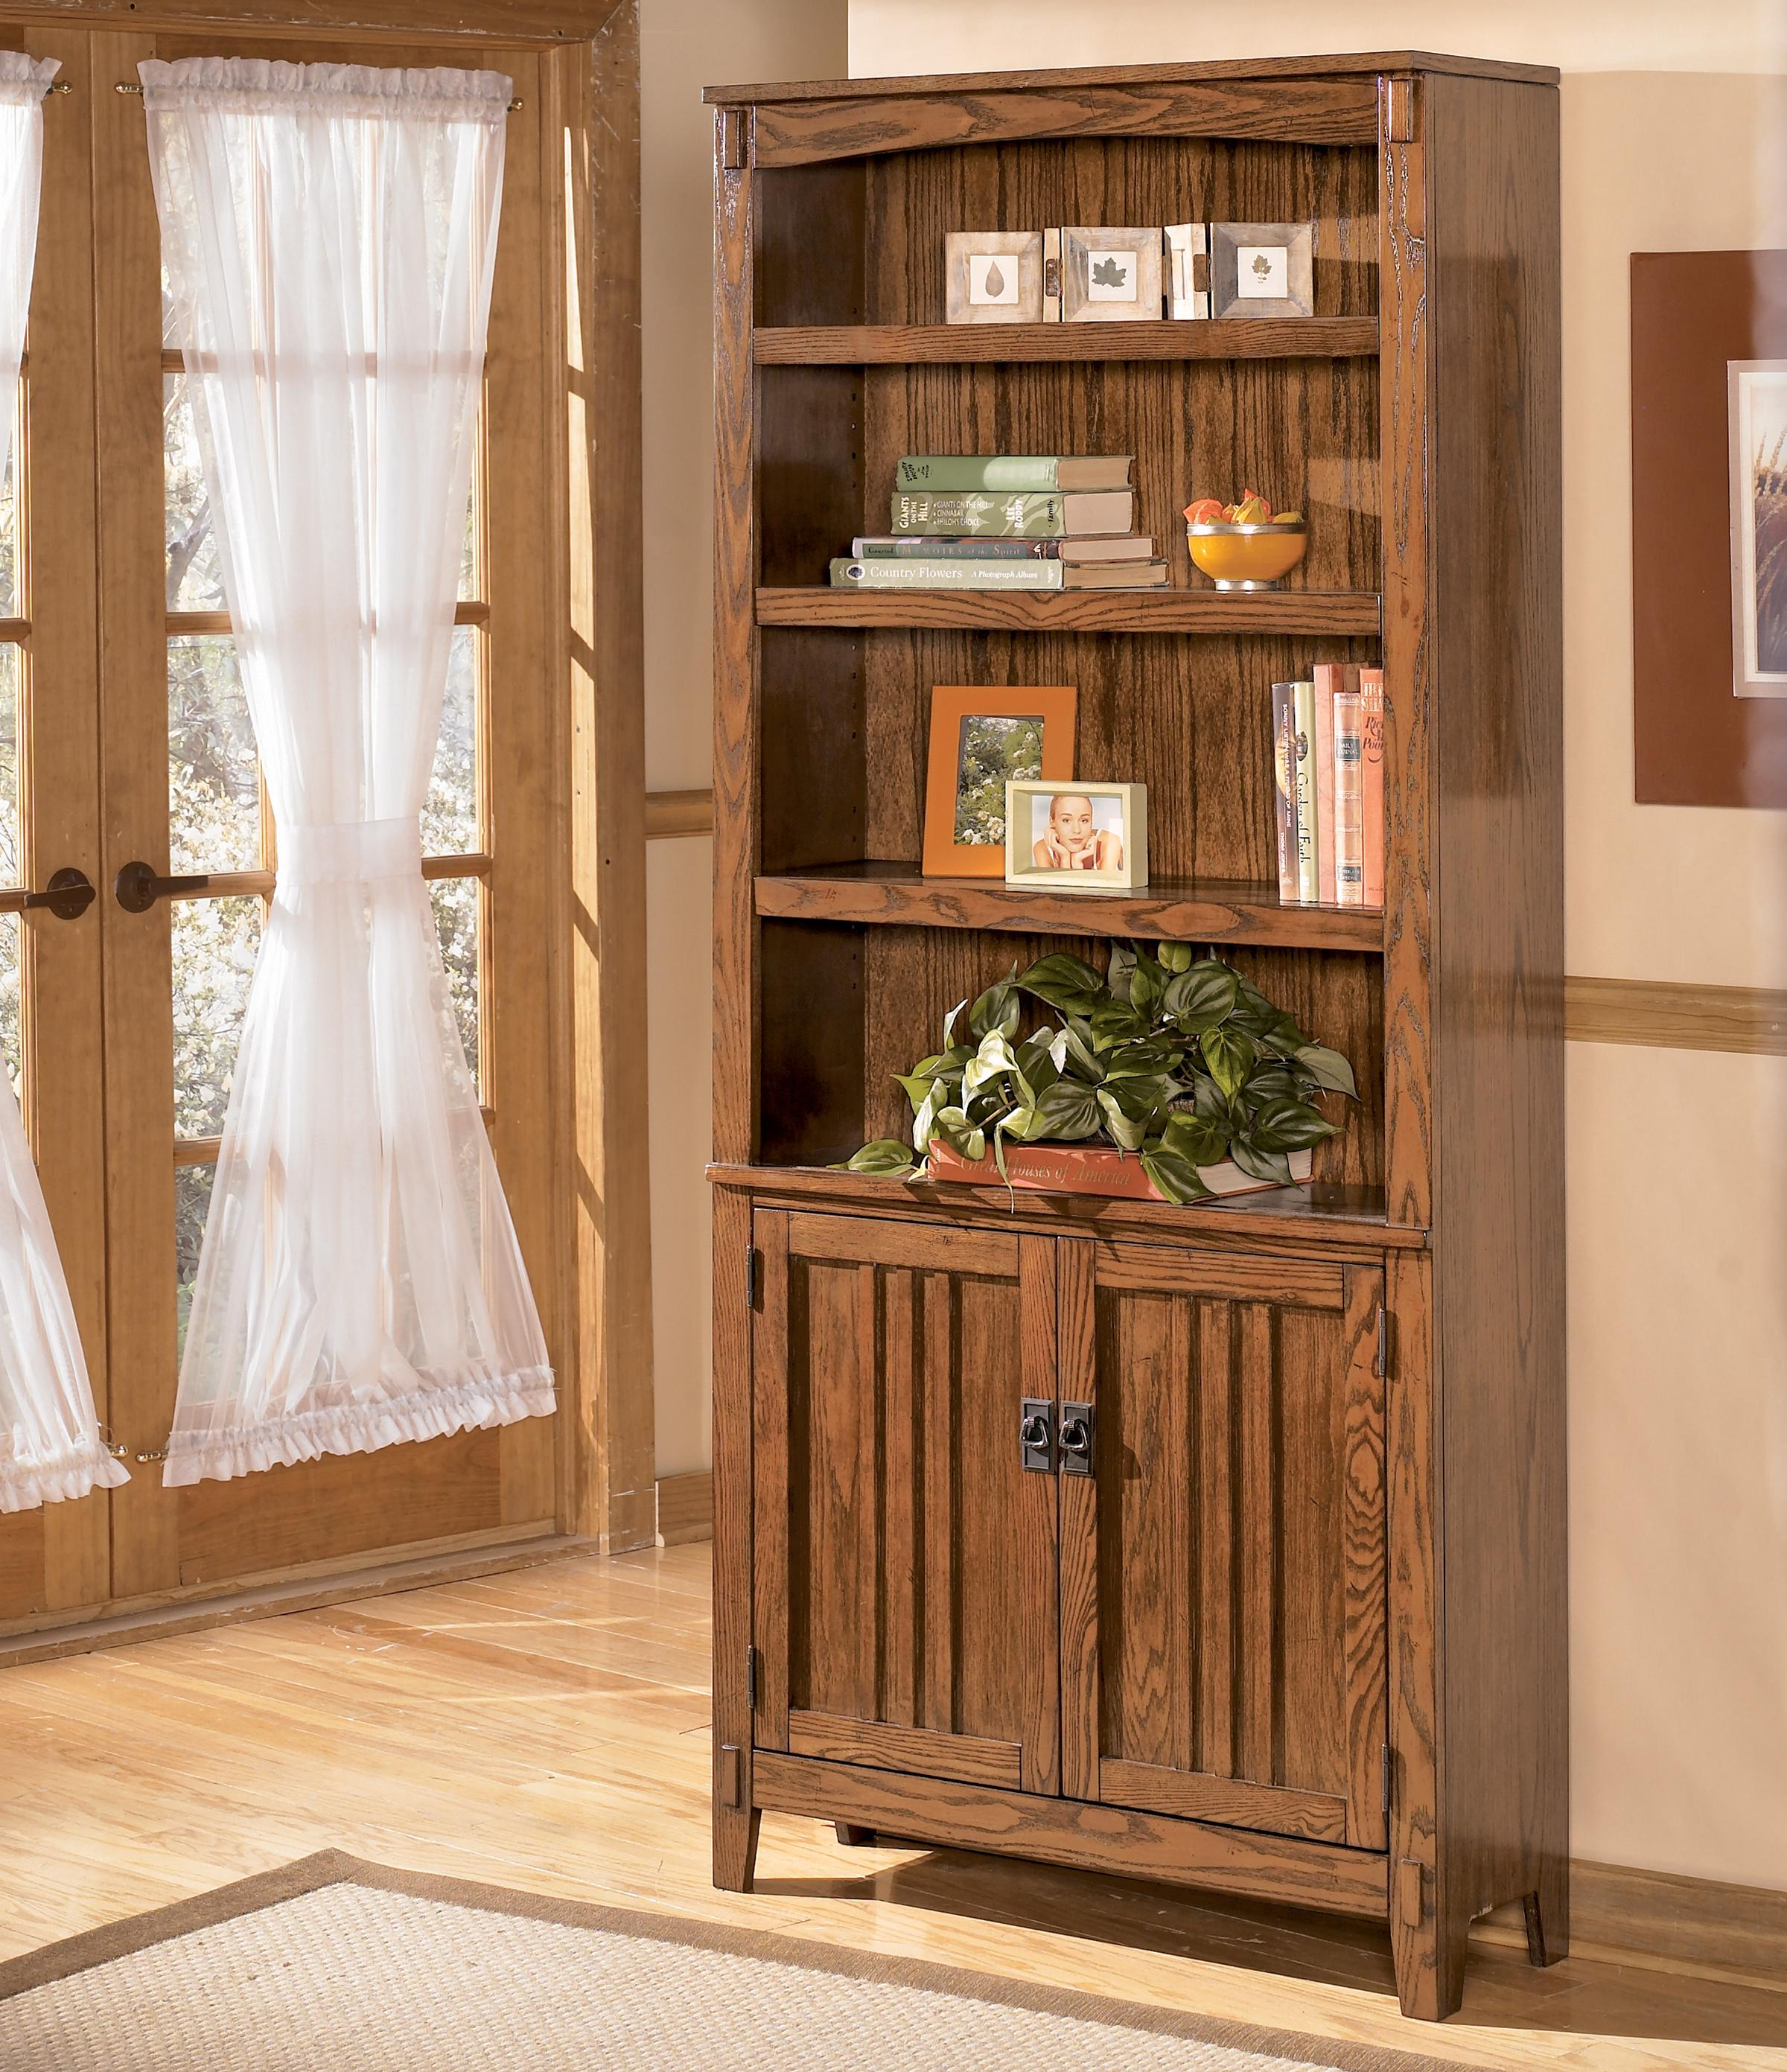 Ashley Furniture Cross Island Large Door Bookcase - Item Number: H319-18